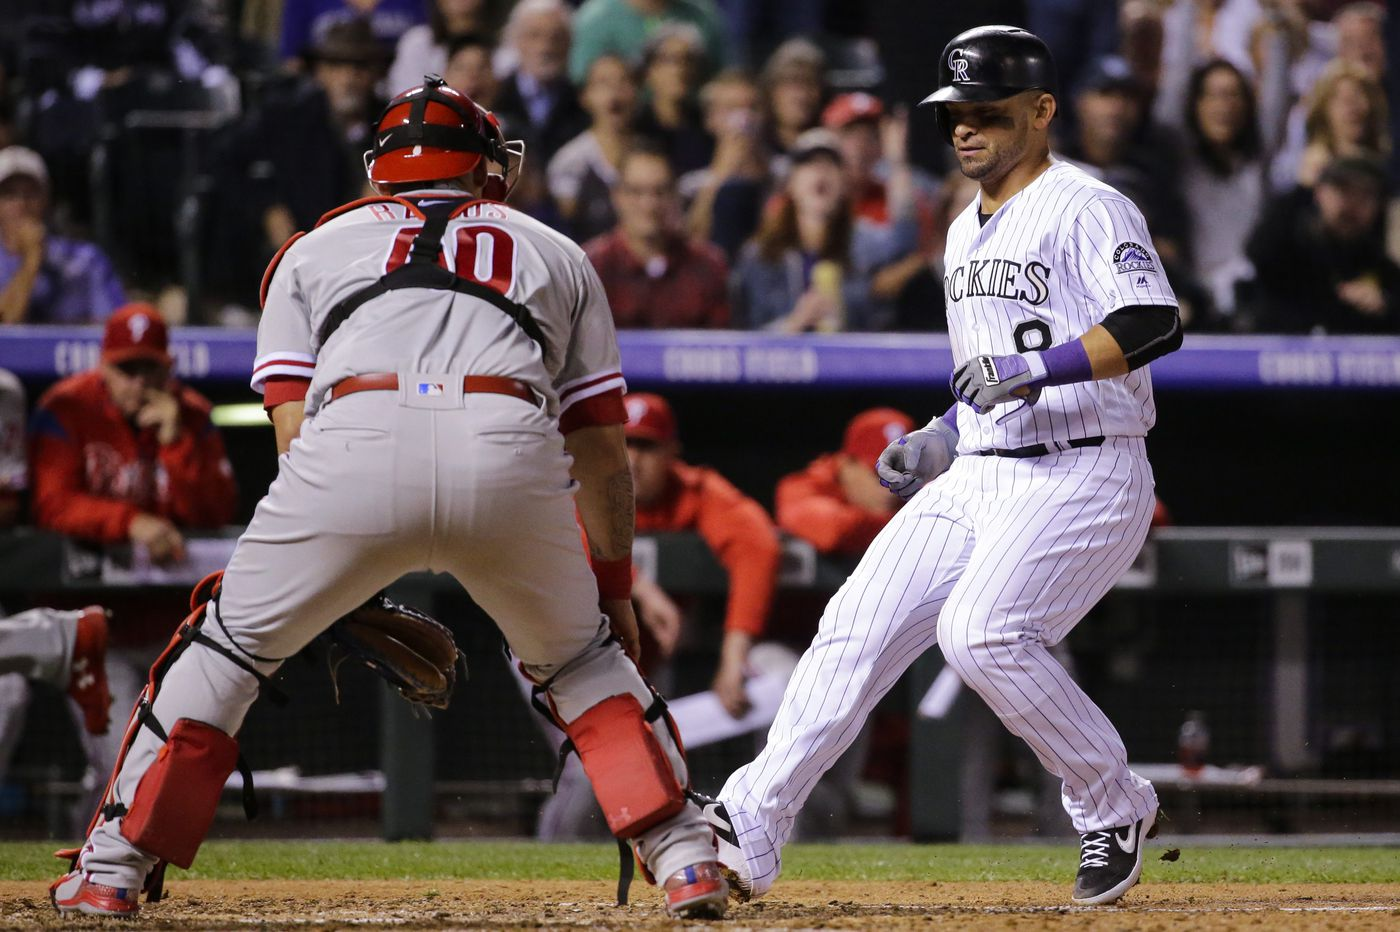 Phillies fall to .500 with 10-1 loss to Rockies